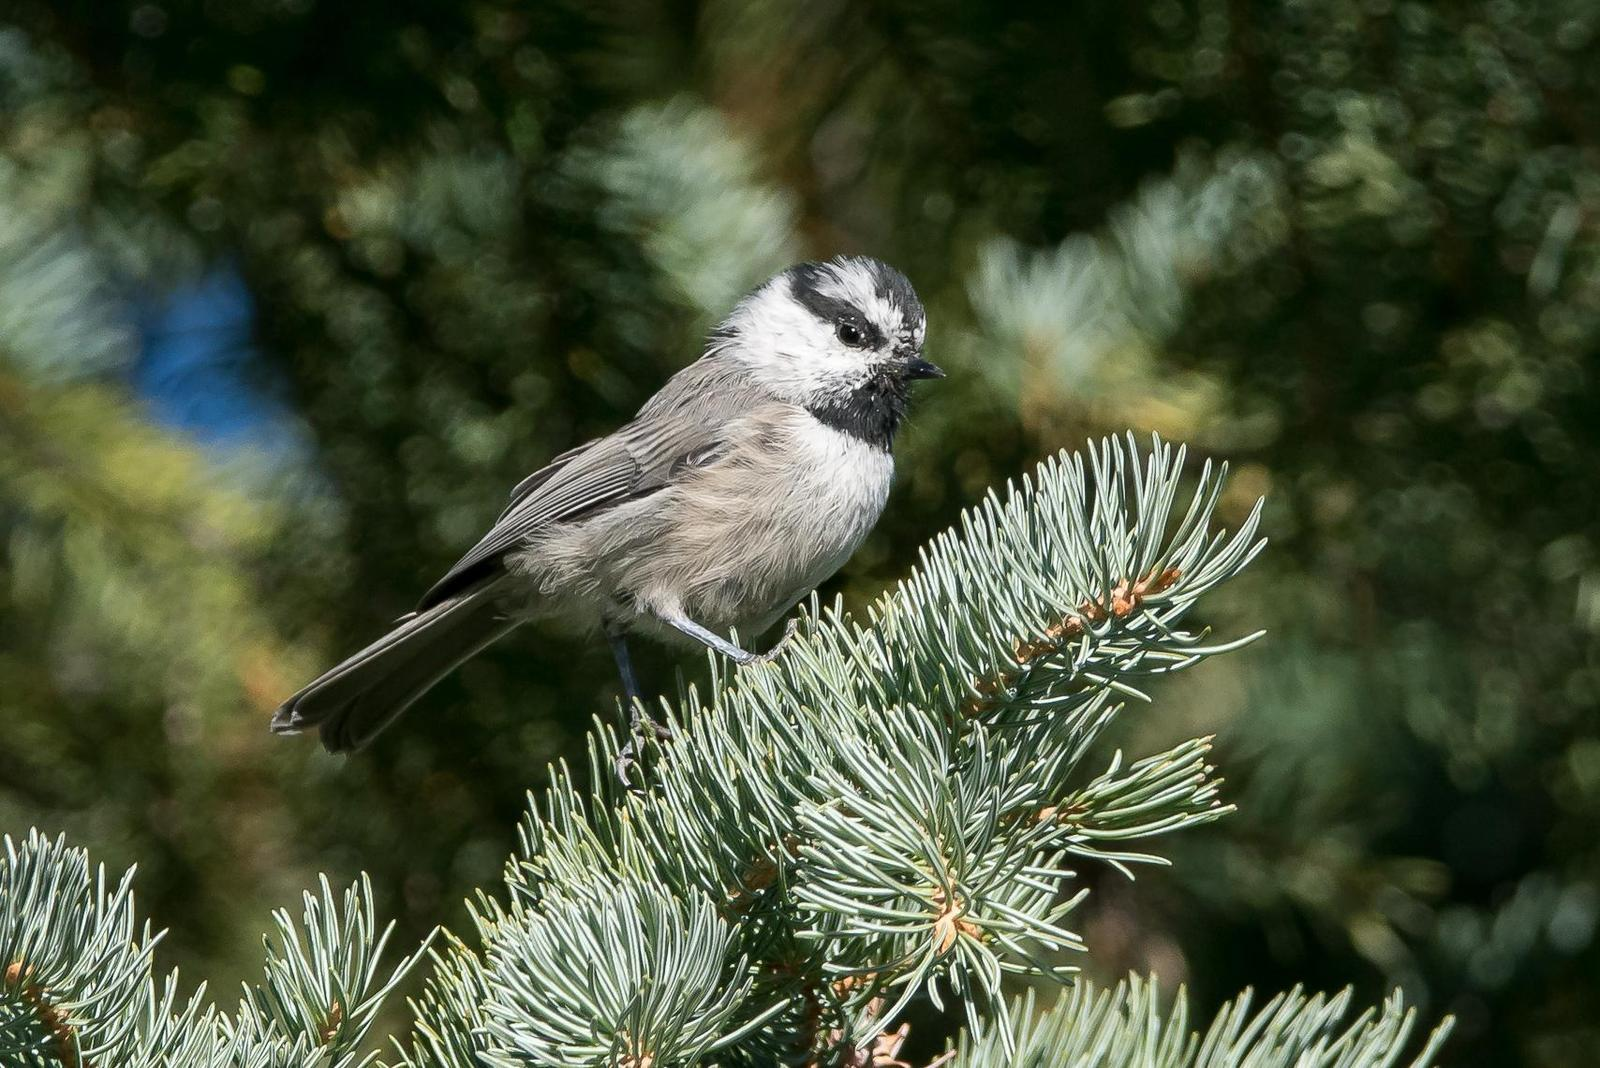 Mountain Chickadee Photo by Gerald Hoekstra